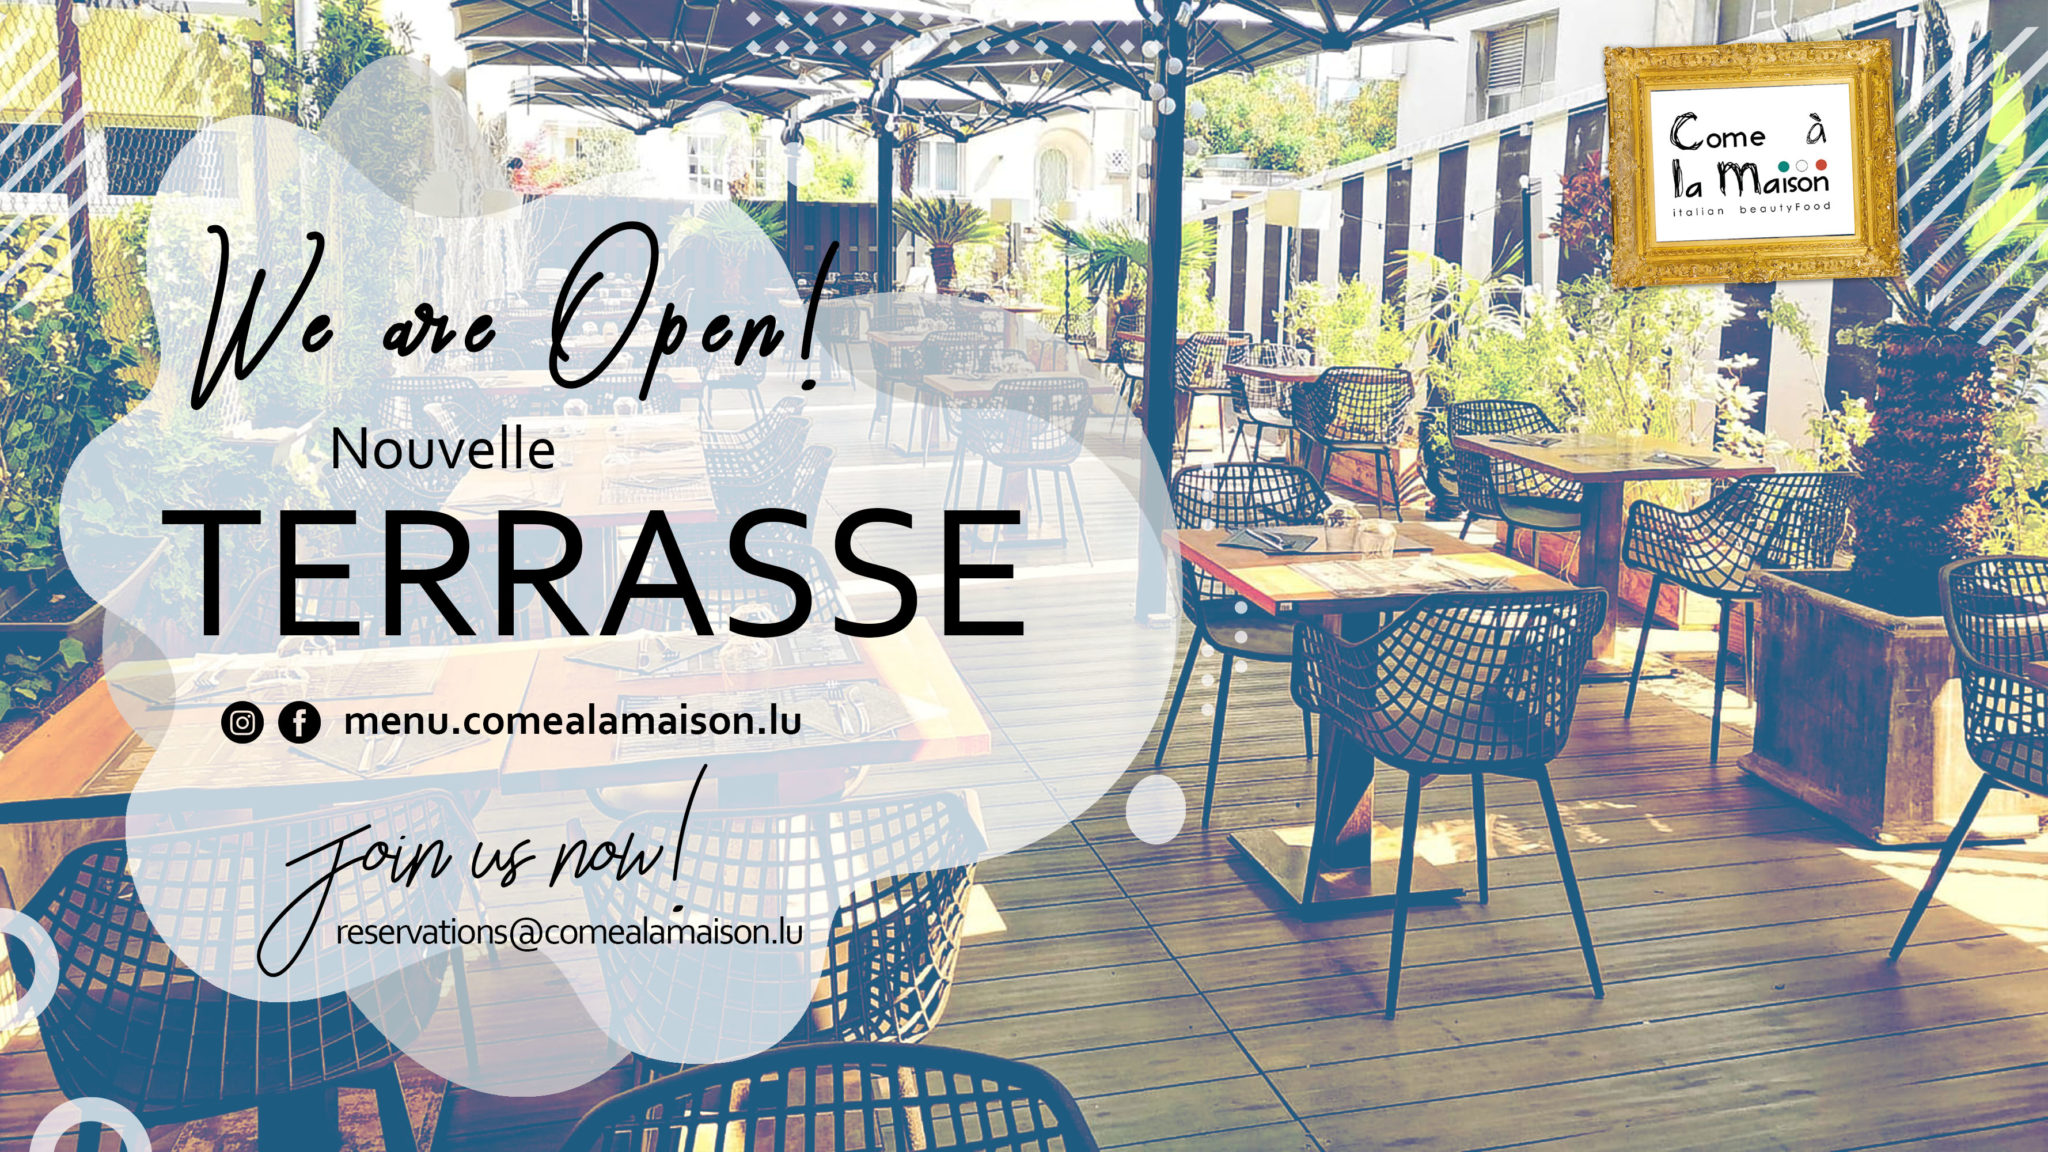 YES! WE ARE OPEN! Nouvelle Terrasse !